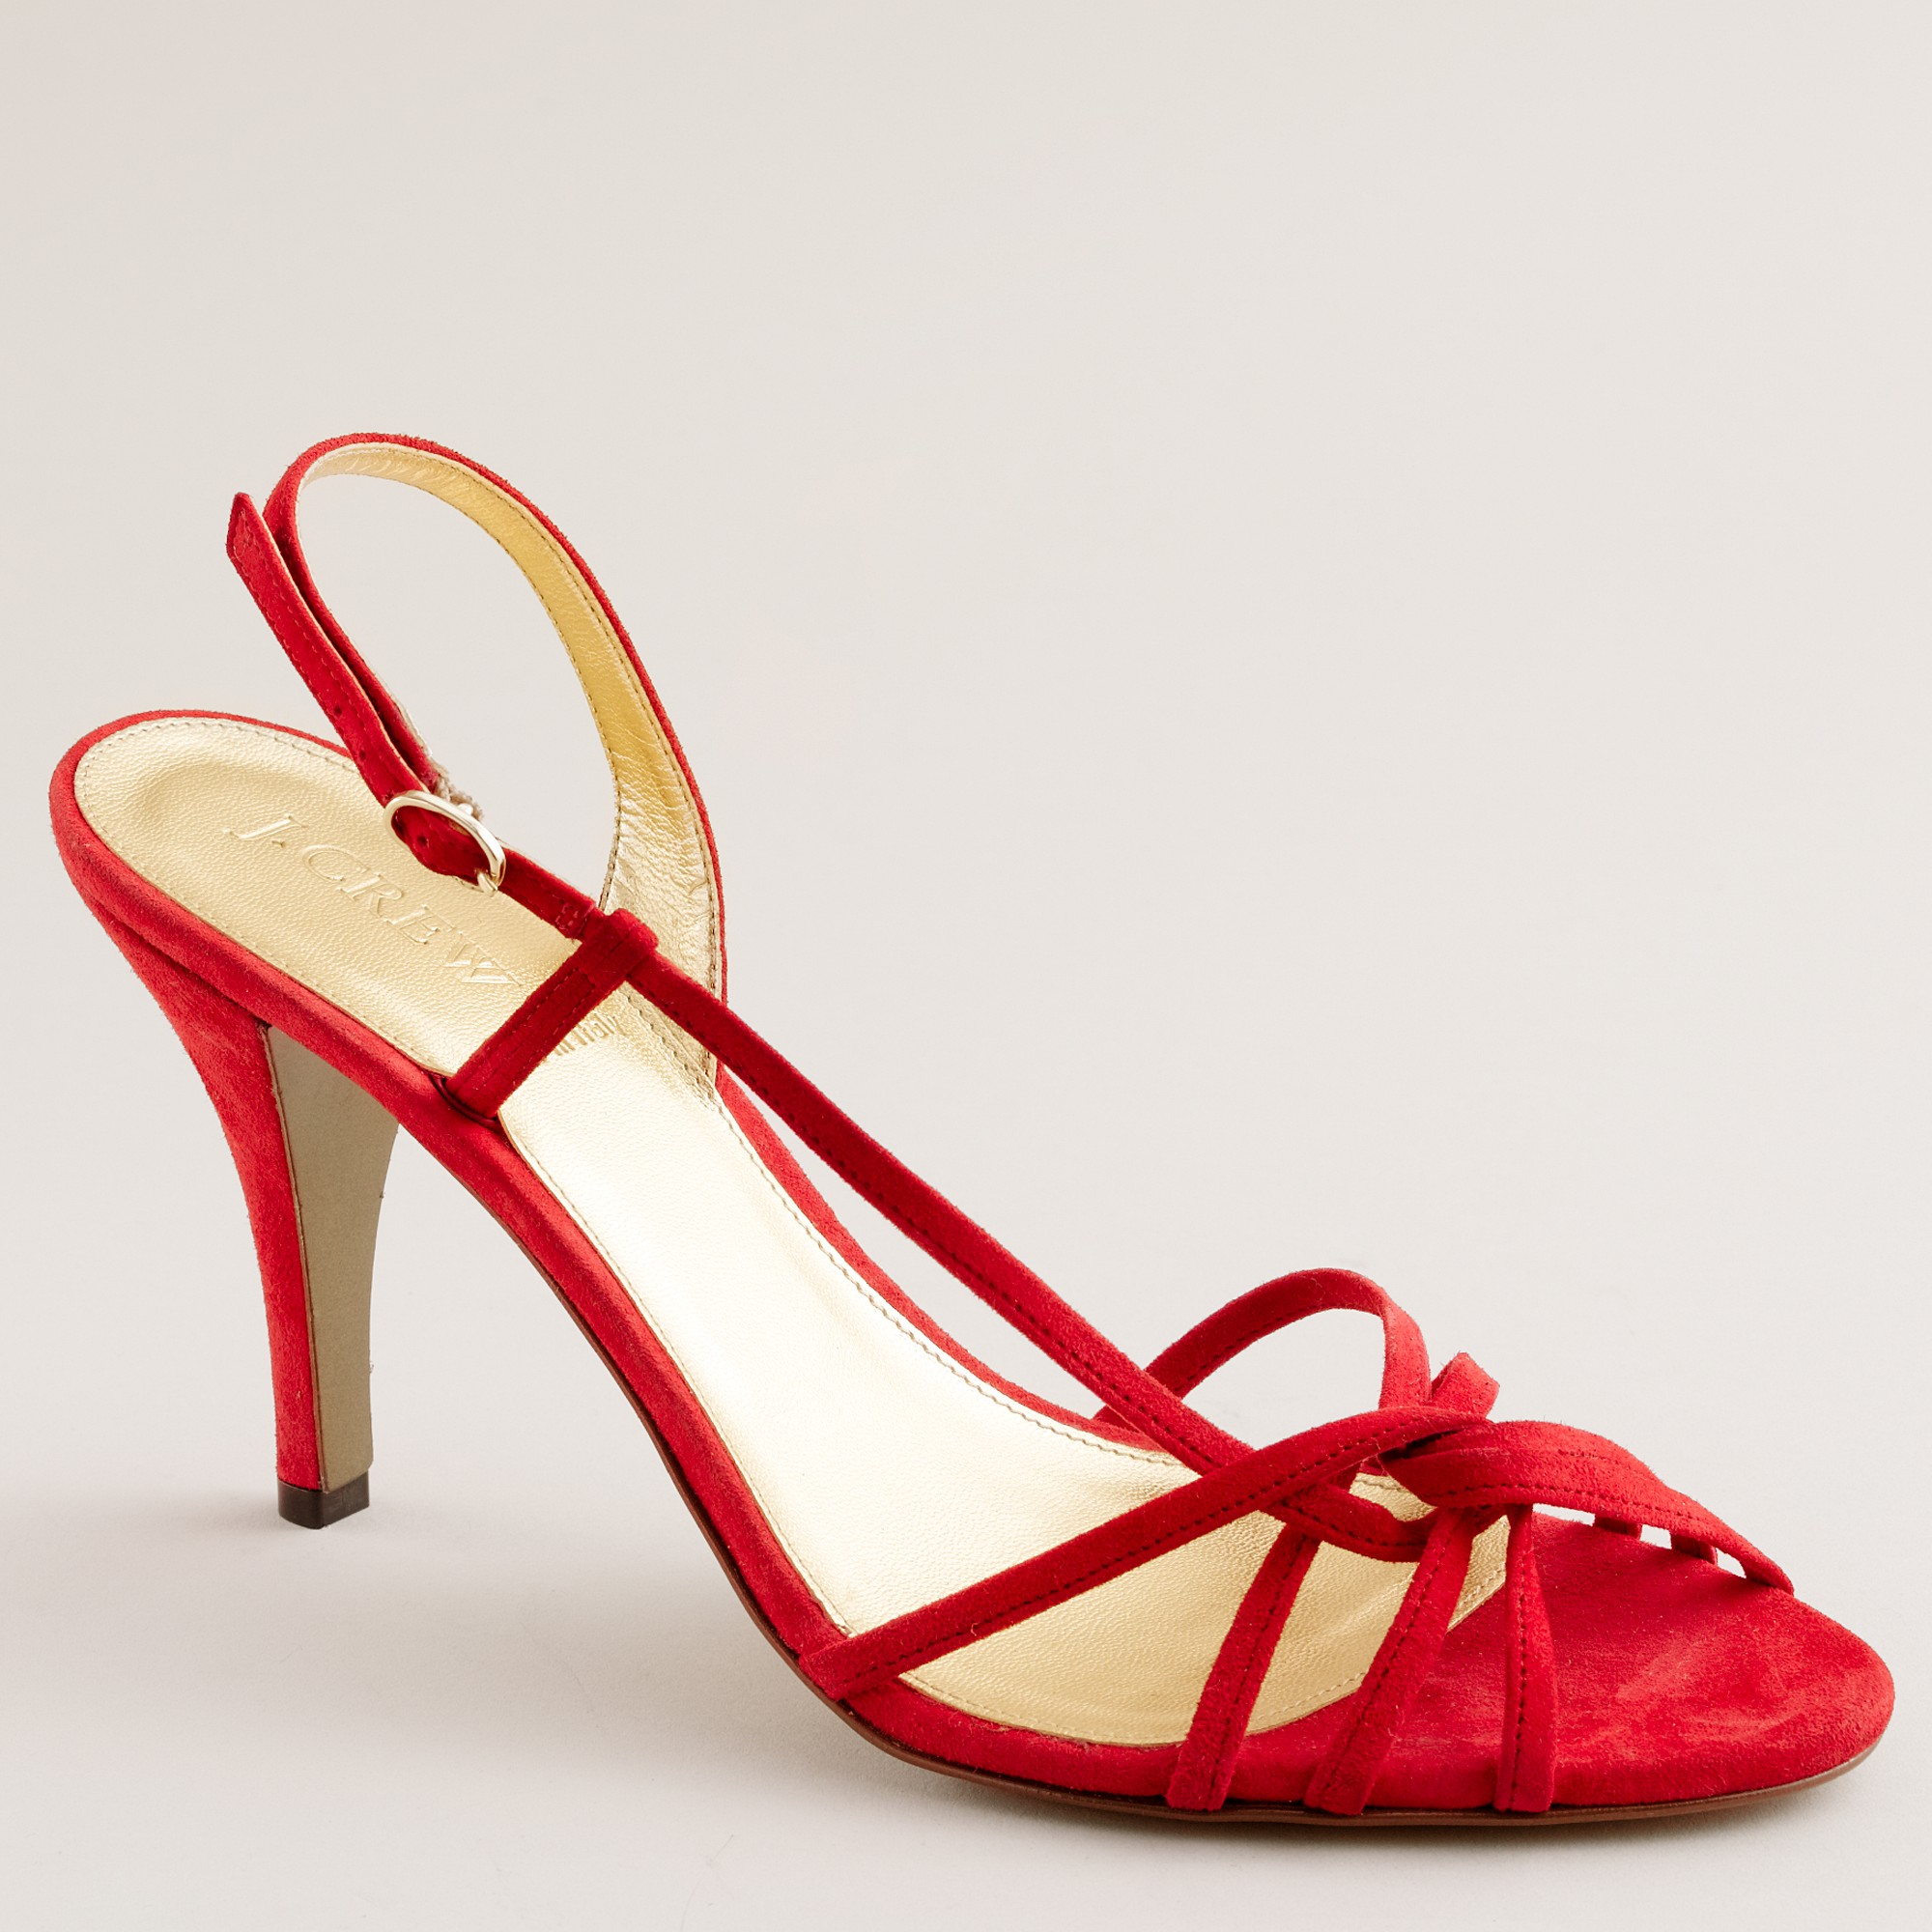 J.crew Rory Strappy Sandals in Red | Lyst